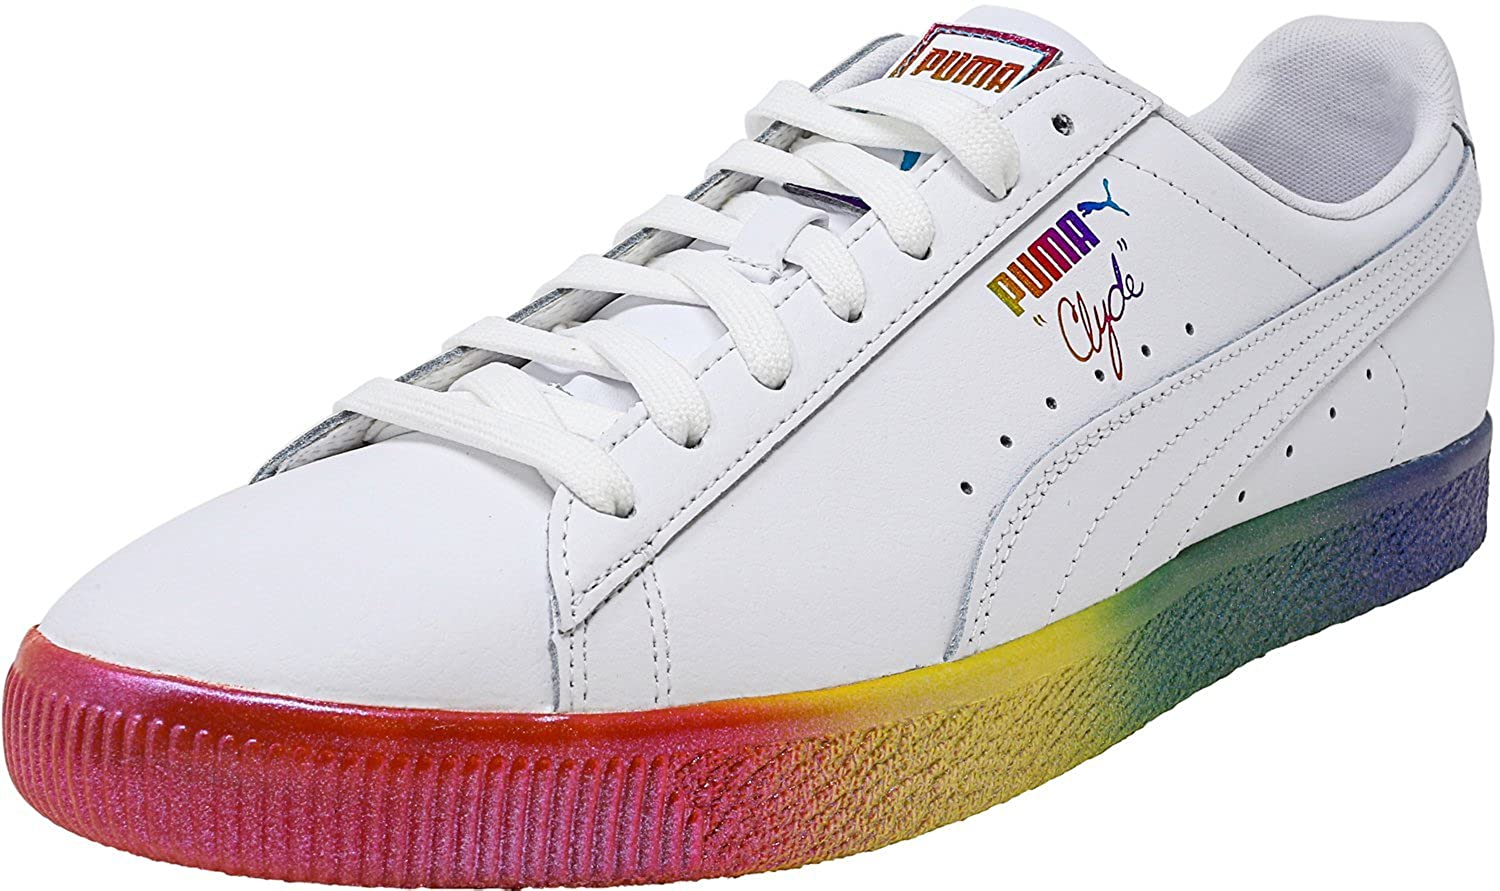 Puma Men's Clyde Prd White Ankle High Leather Fashion Sneaker 12M